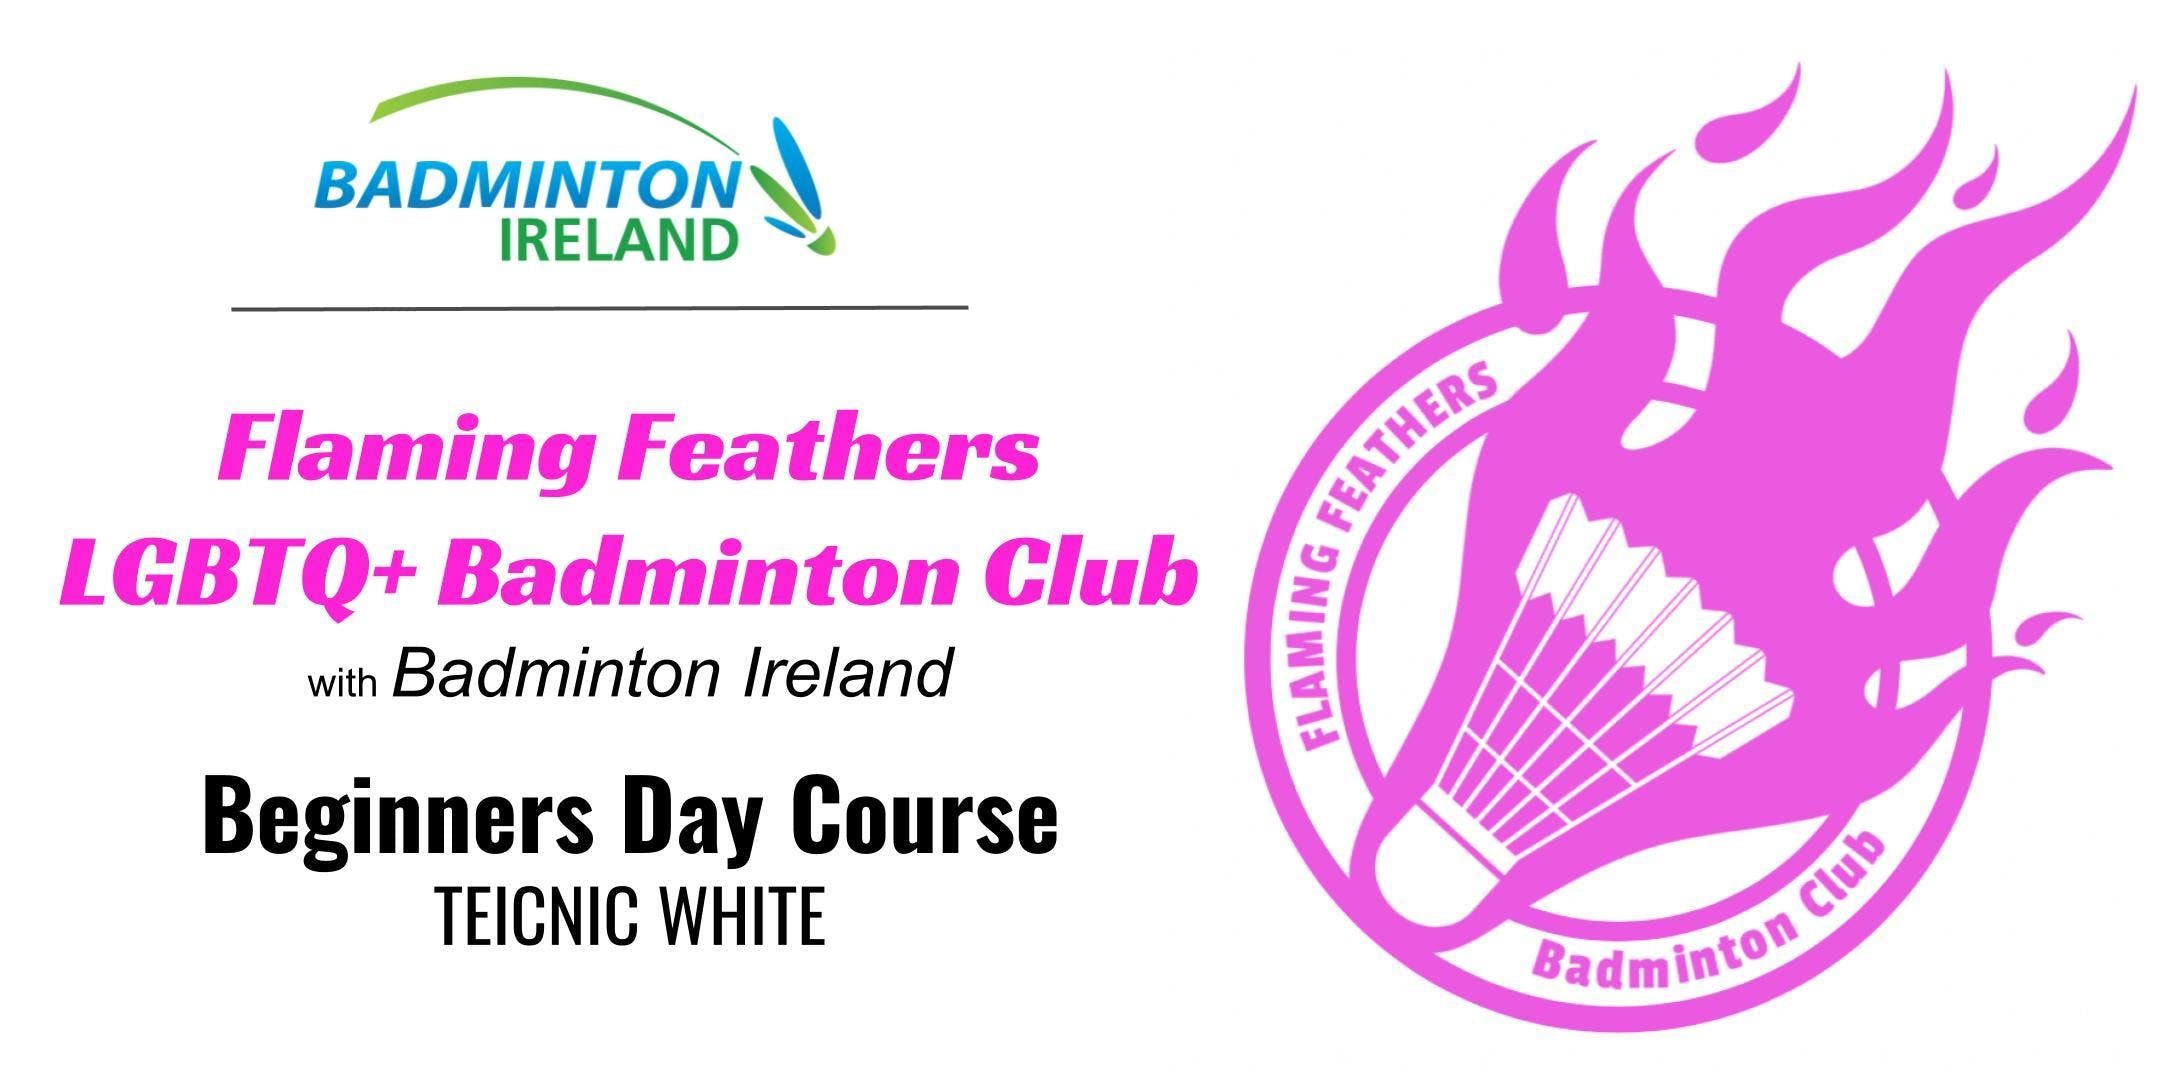 Beginners Badminton Day Course - Teicnic White